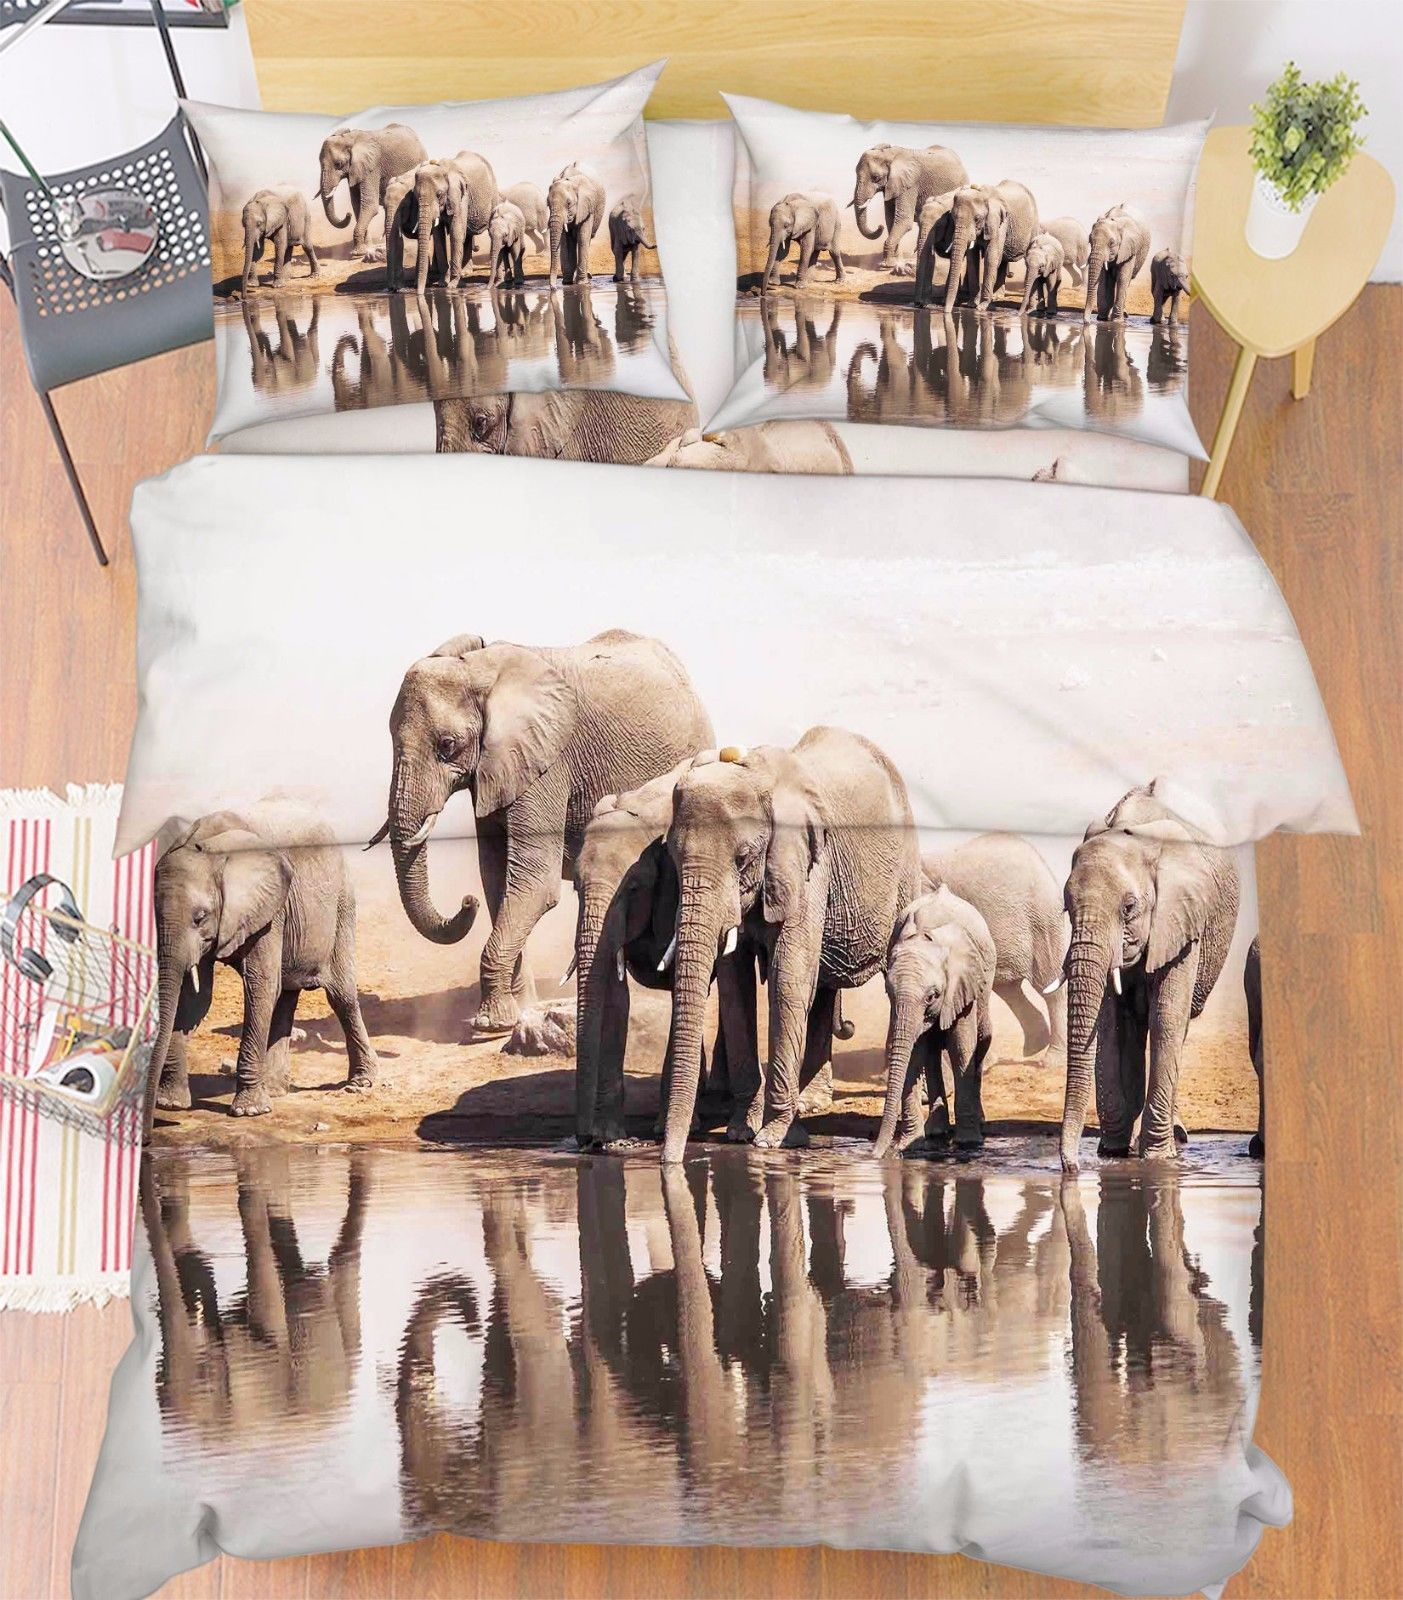 Primary image for 3D Elephants 017 Bed Pillowcases Quilt Duvet Cover Set Single Queen King Size AU